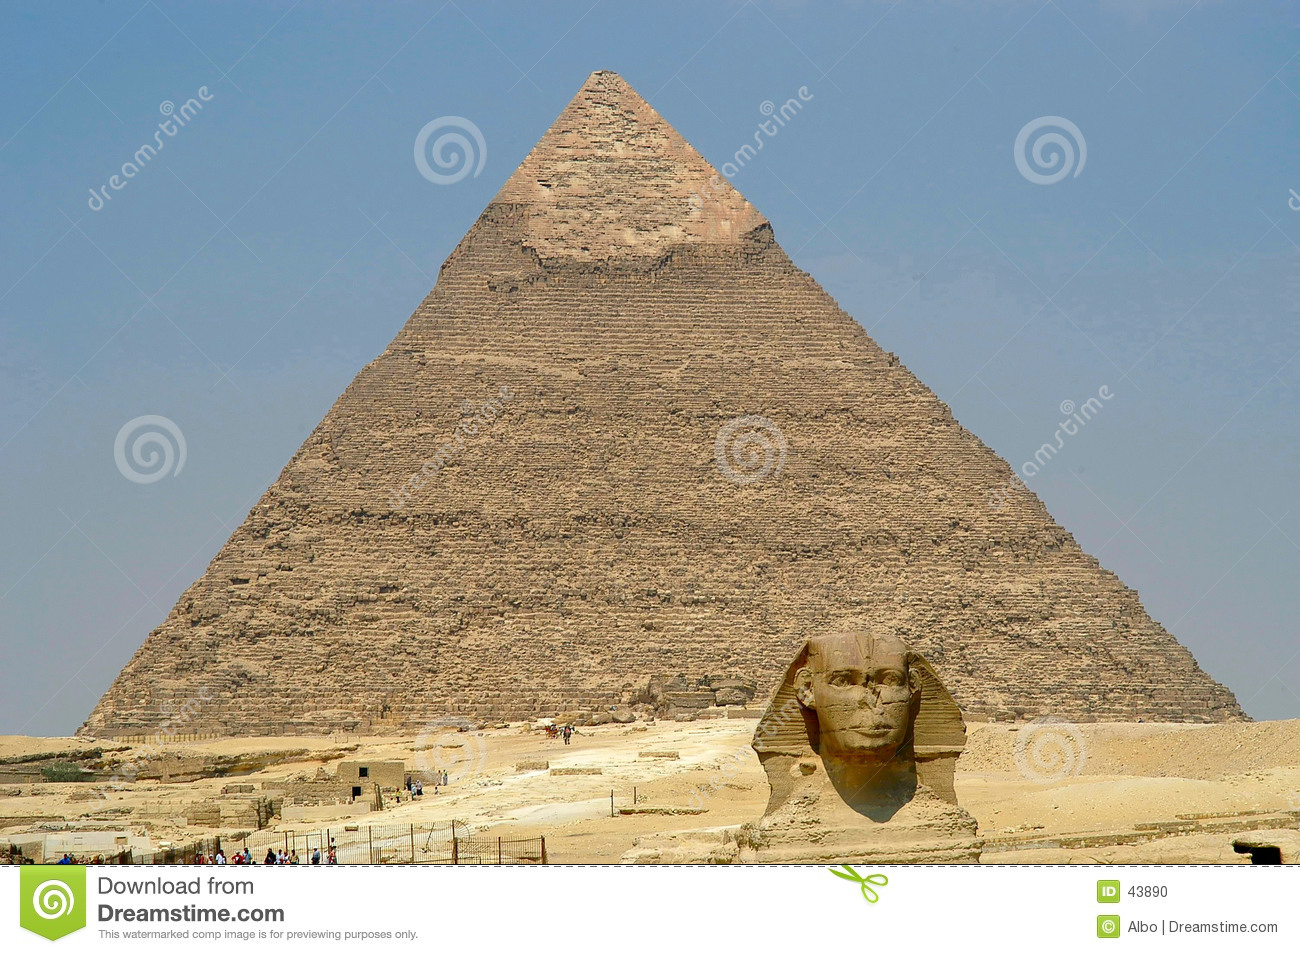 Cheope pyramid and Sphynx